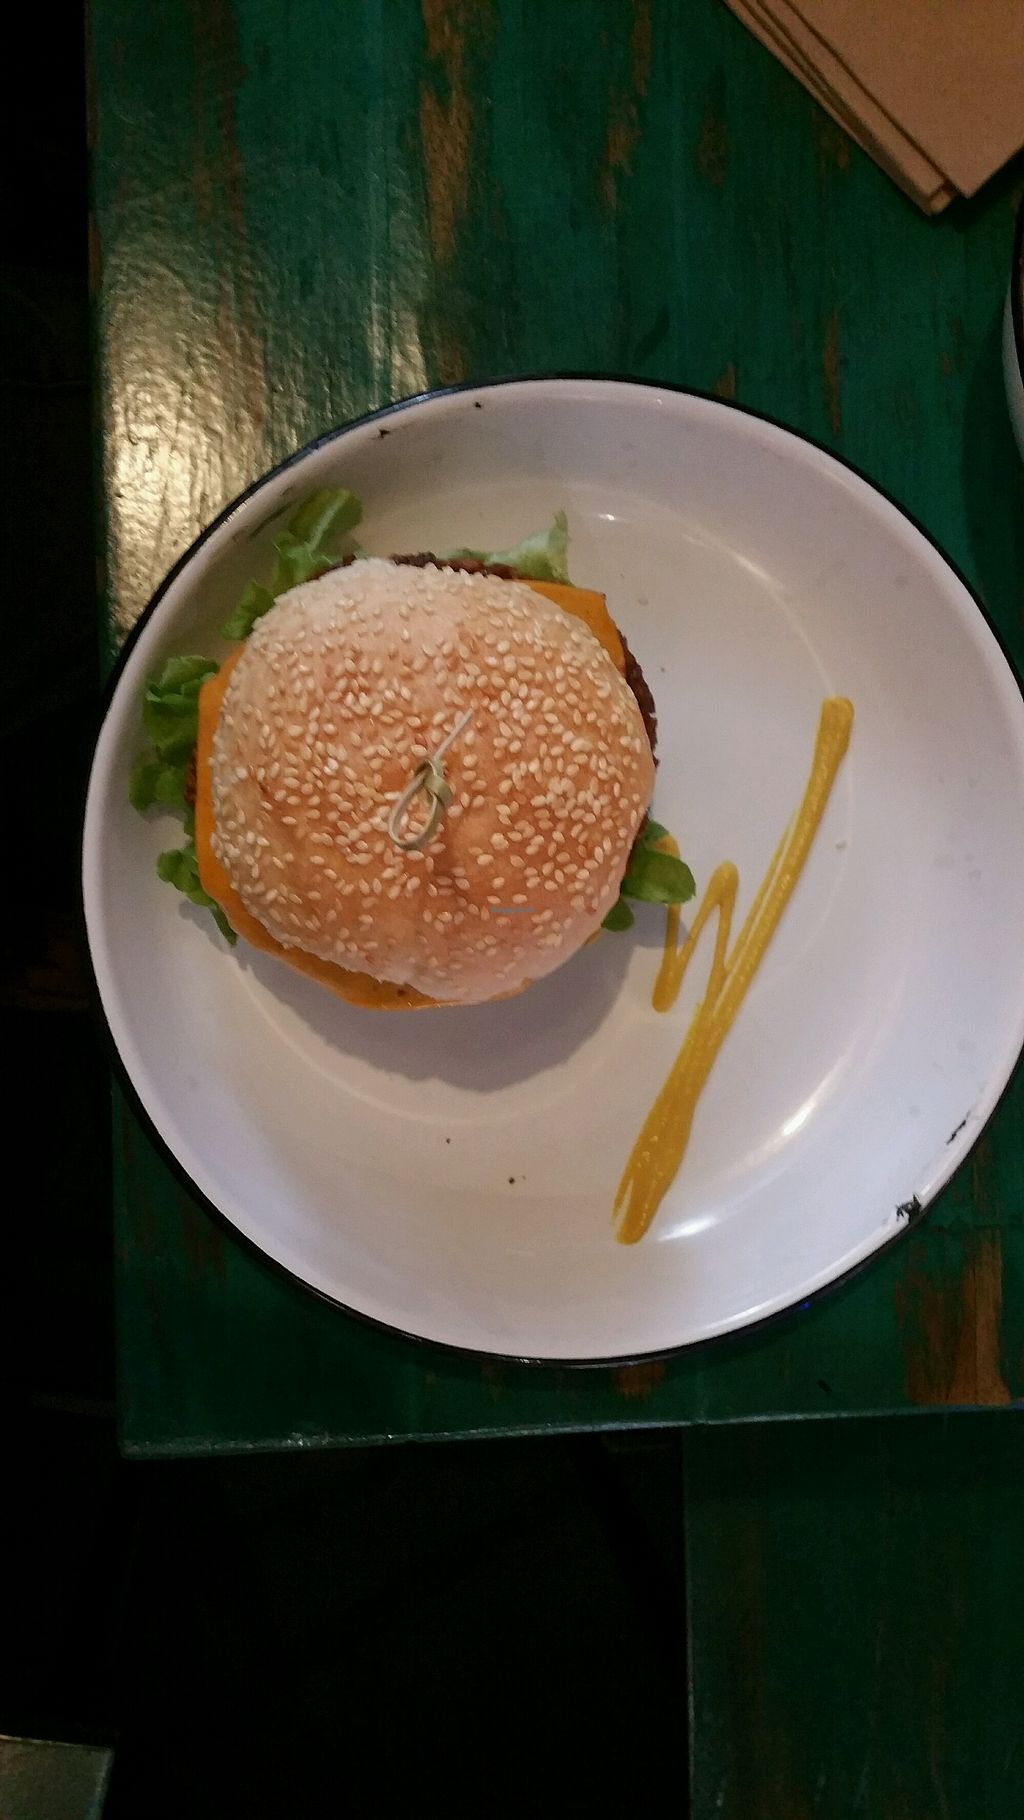 """Photo of Netherworld  by <a href=""""/members/profile/Mike%20Munsie"""">Mike Munsie</a> <br/>vegan burgatory burger <br/> April 15, 2018  - <a href='/contact/abuse/image/86165/386138'>Report</a>"""